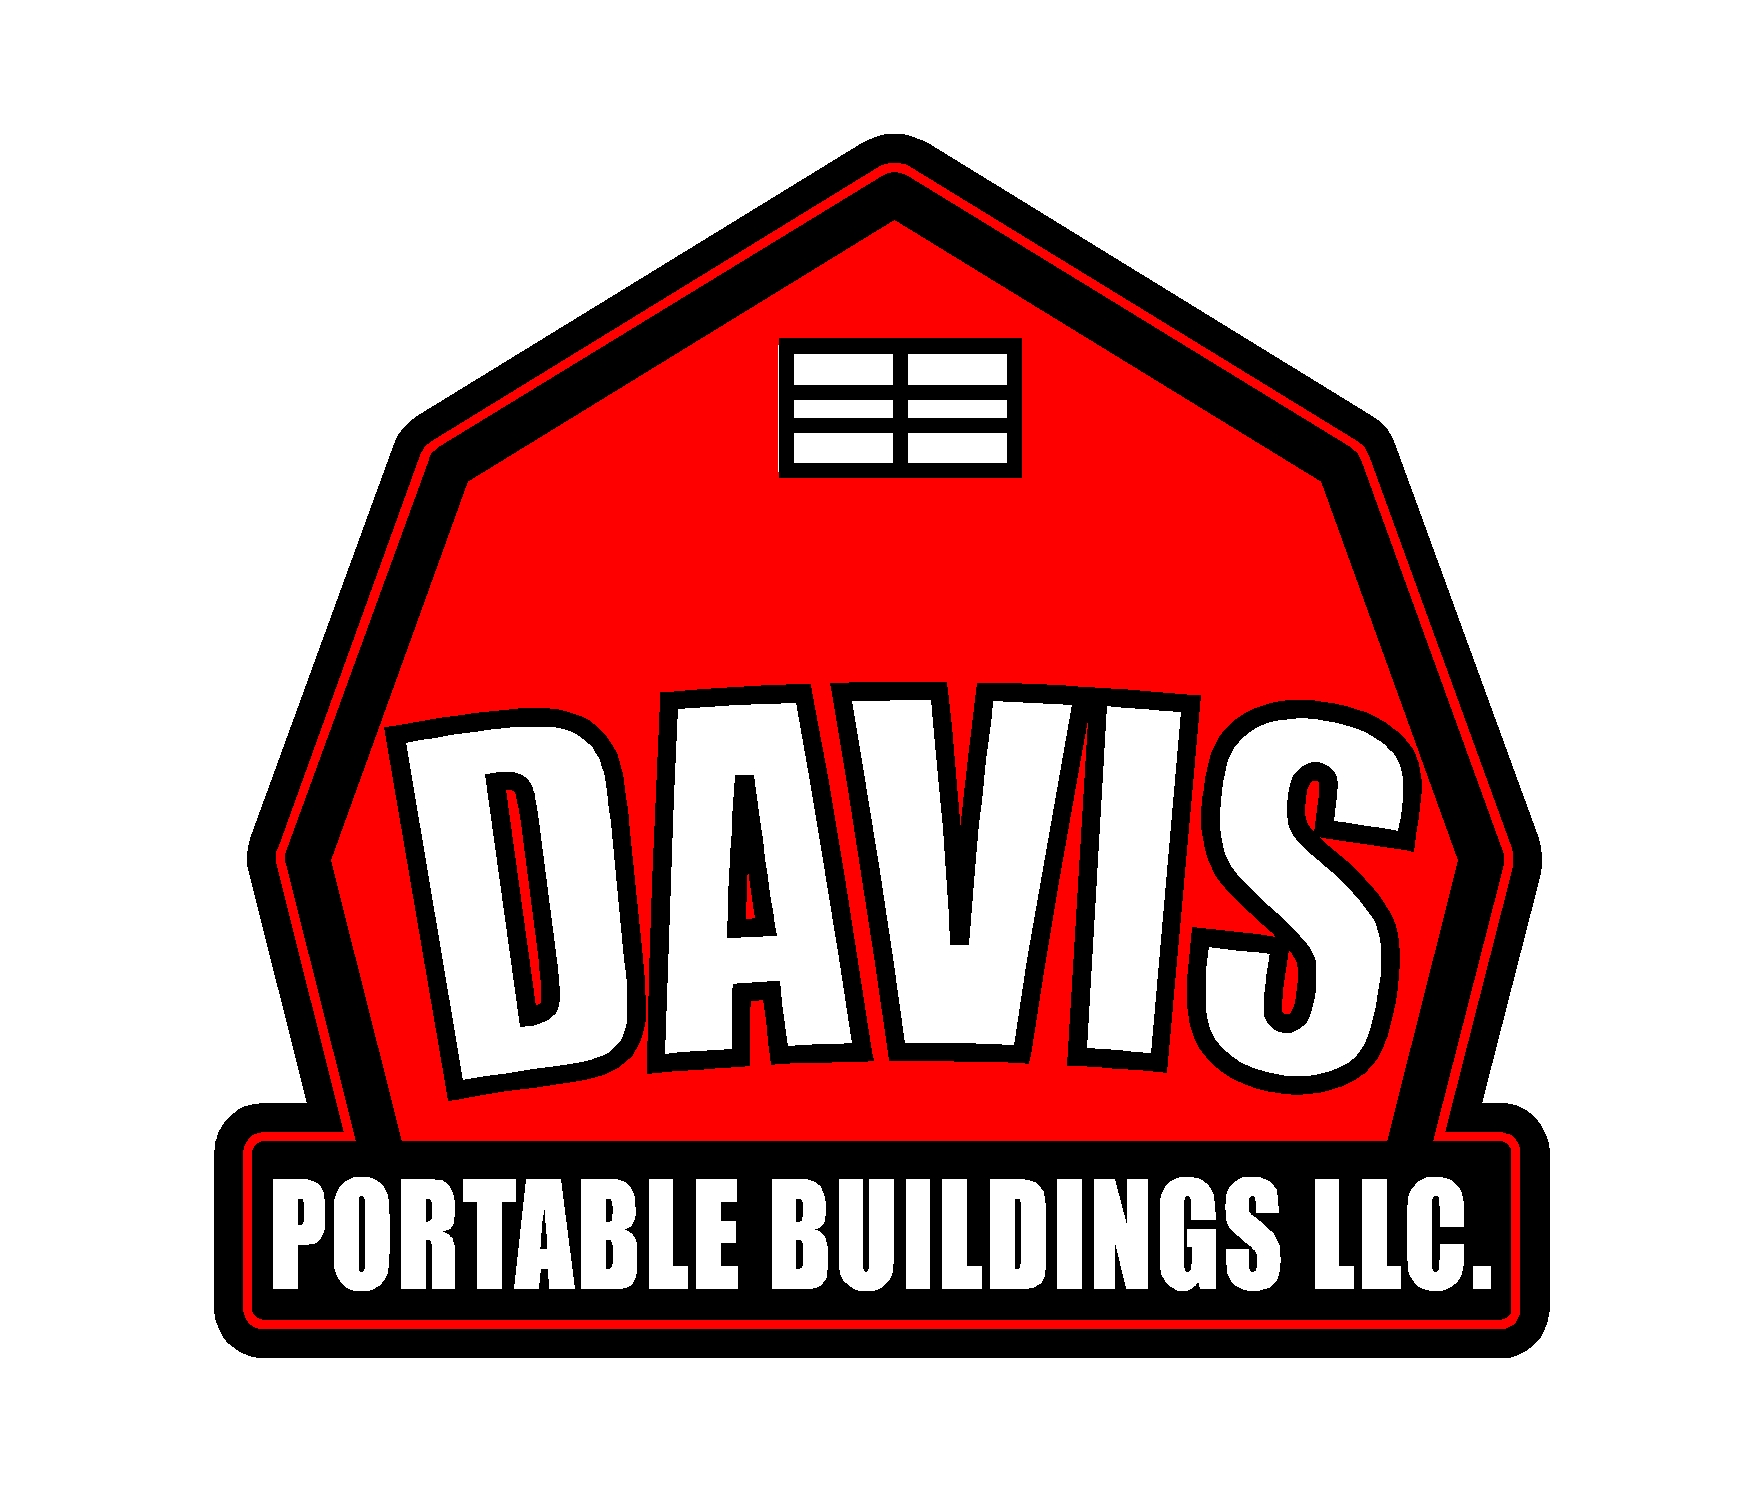 Building your portable storage building on site